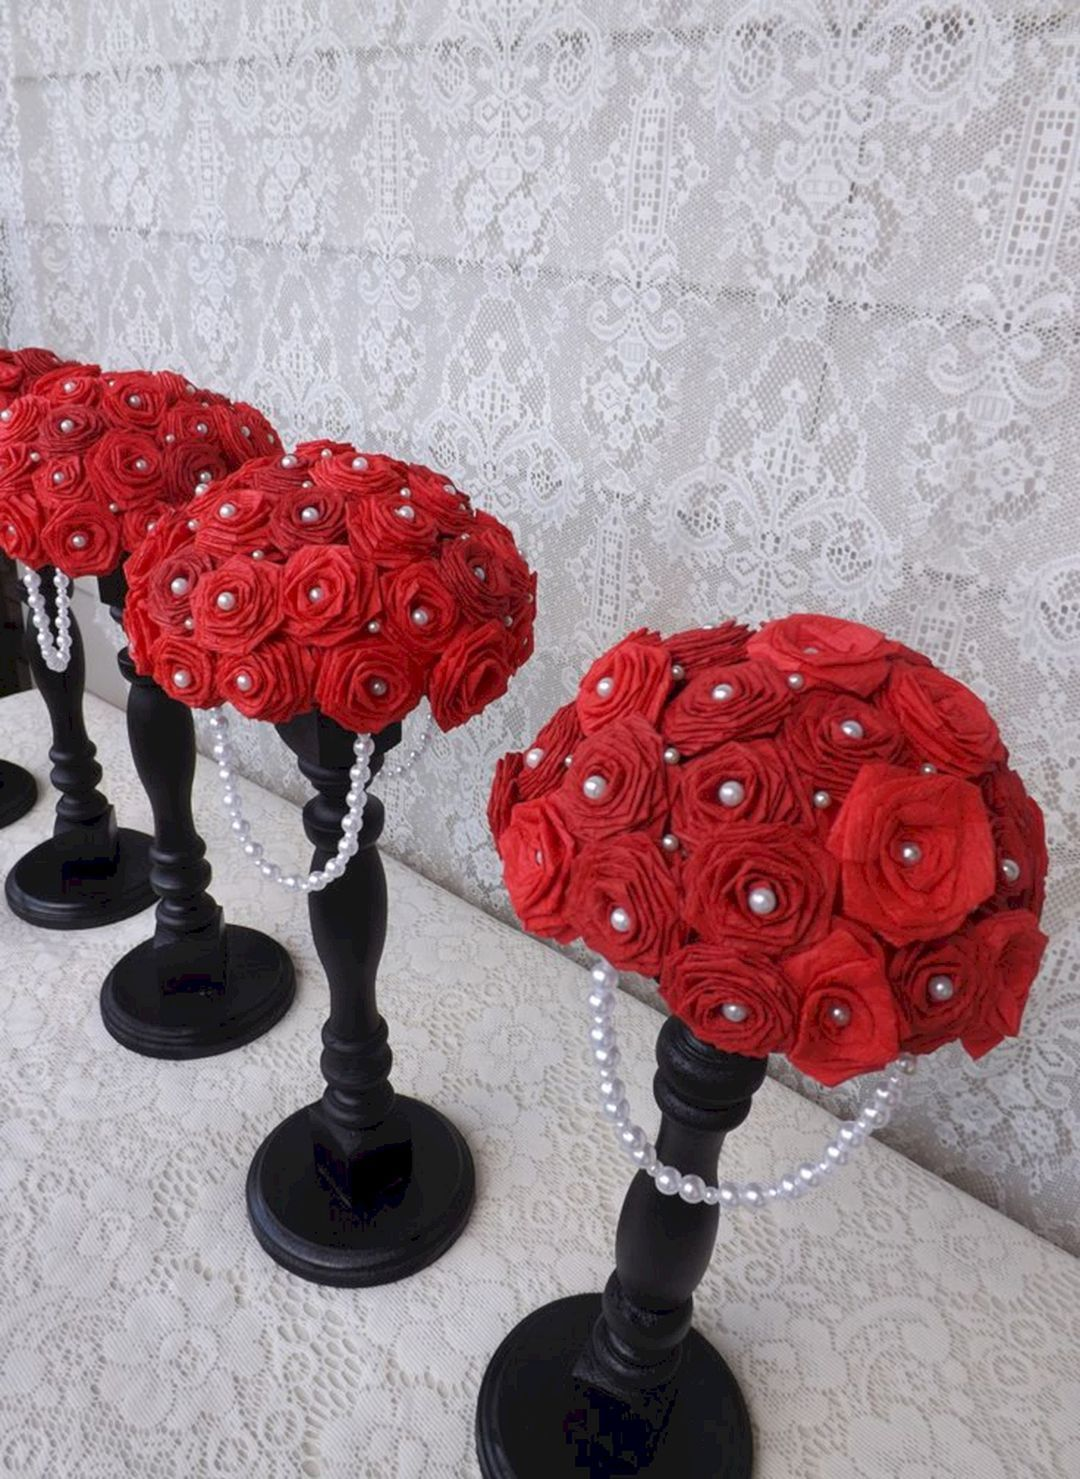 Image Result For Red Black And White Wedding Centerpieces Wedding